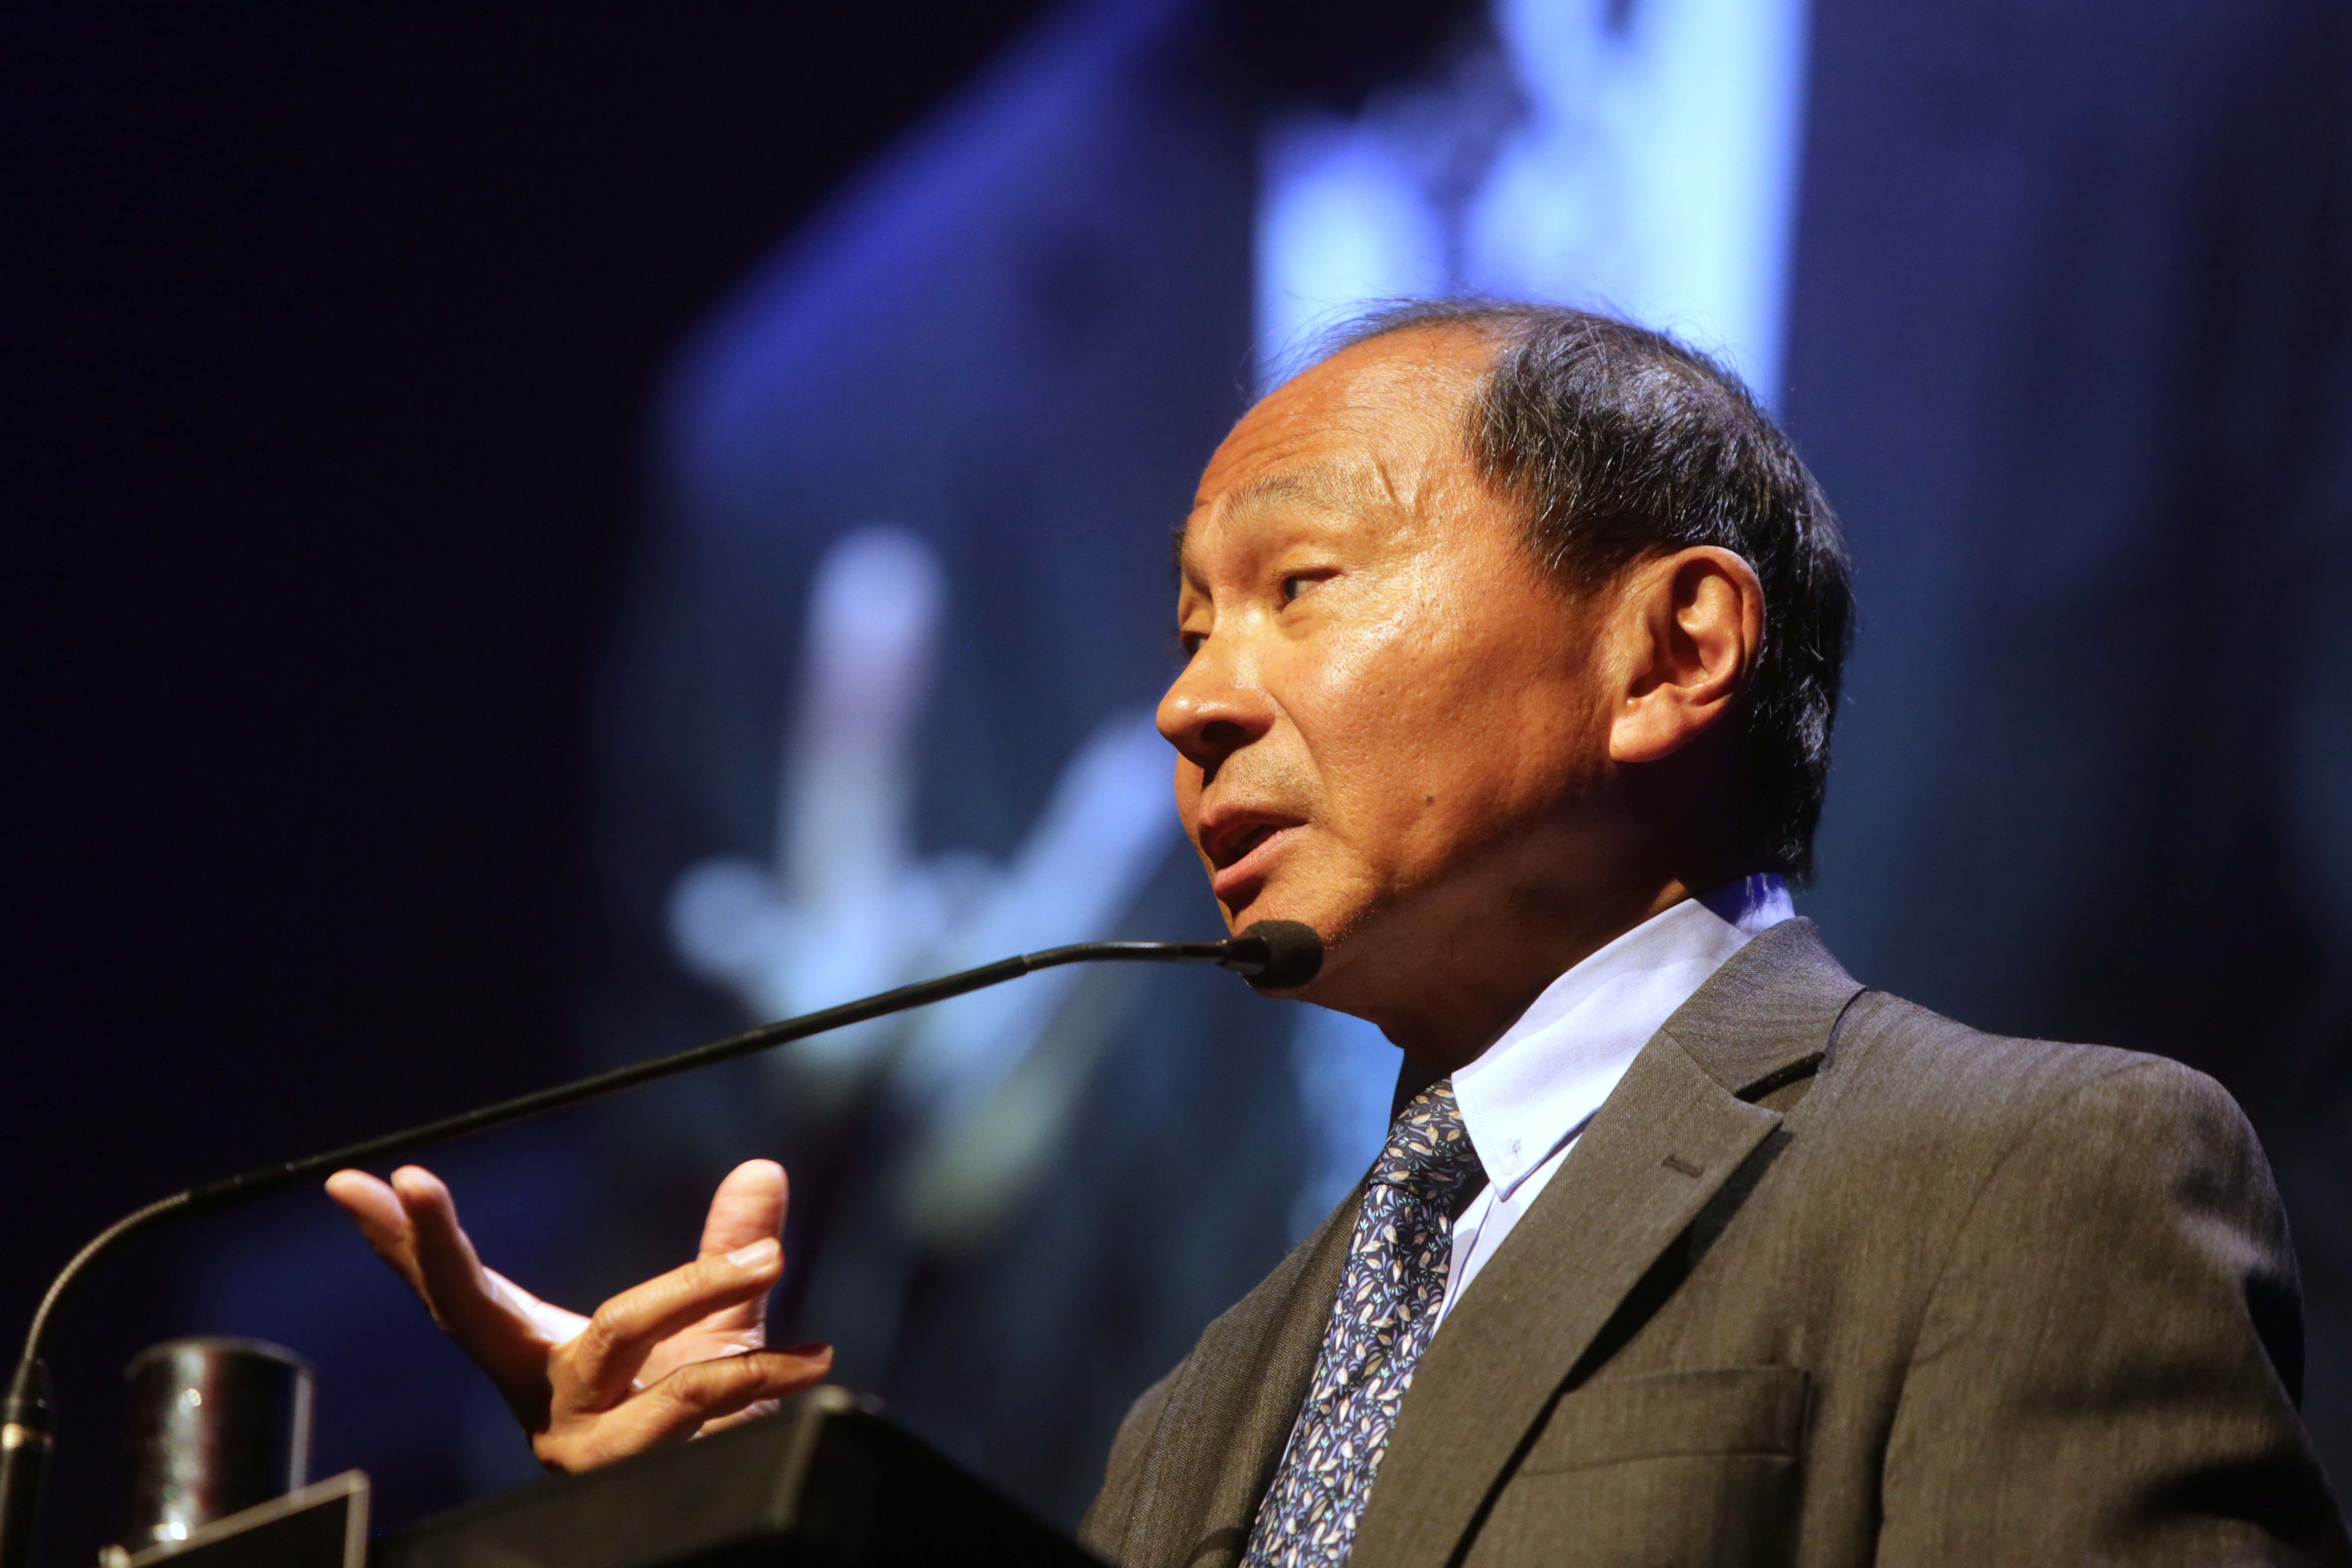 democratic peace thesis fukuyama The trouble with islam, the european strips off its funereal clothes and gives it a carnival suit of democratic fukuyama takes his thesis that history.